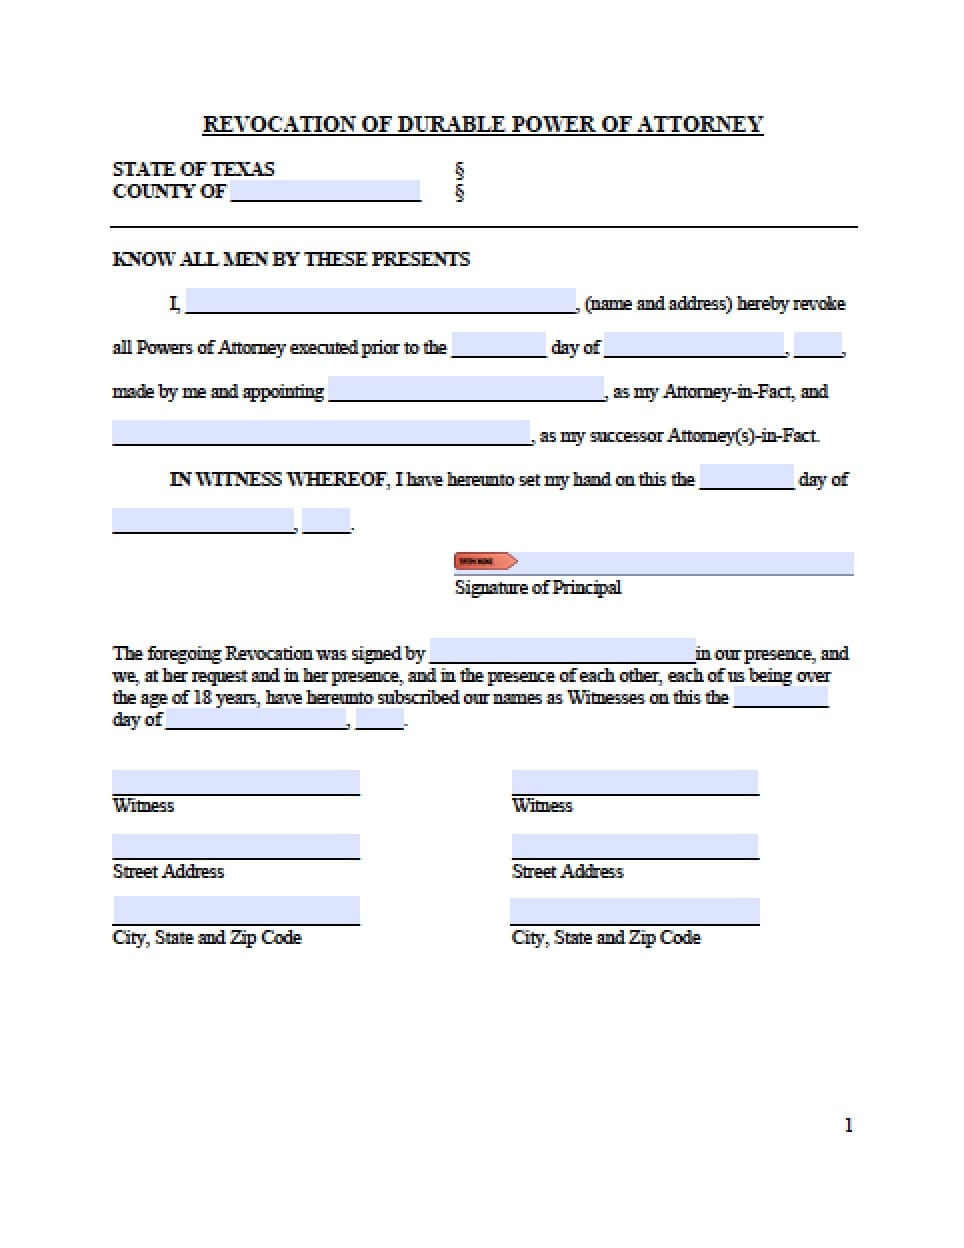 Texas Revocation Power of Attorney Form - Power of Attorney : Power